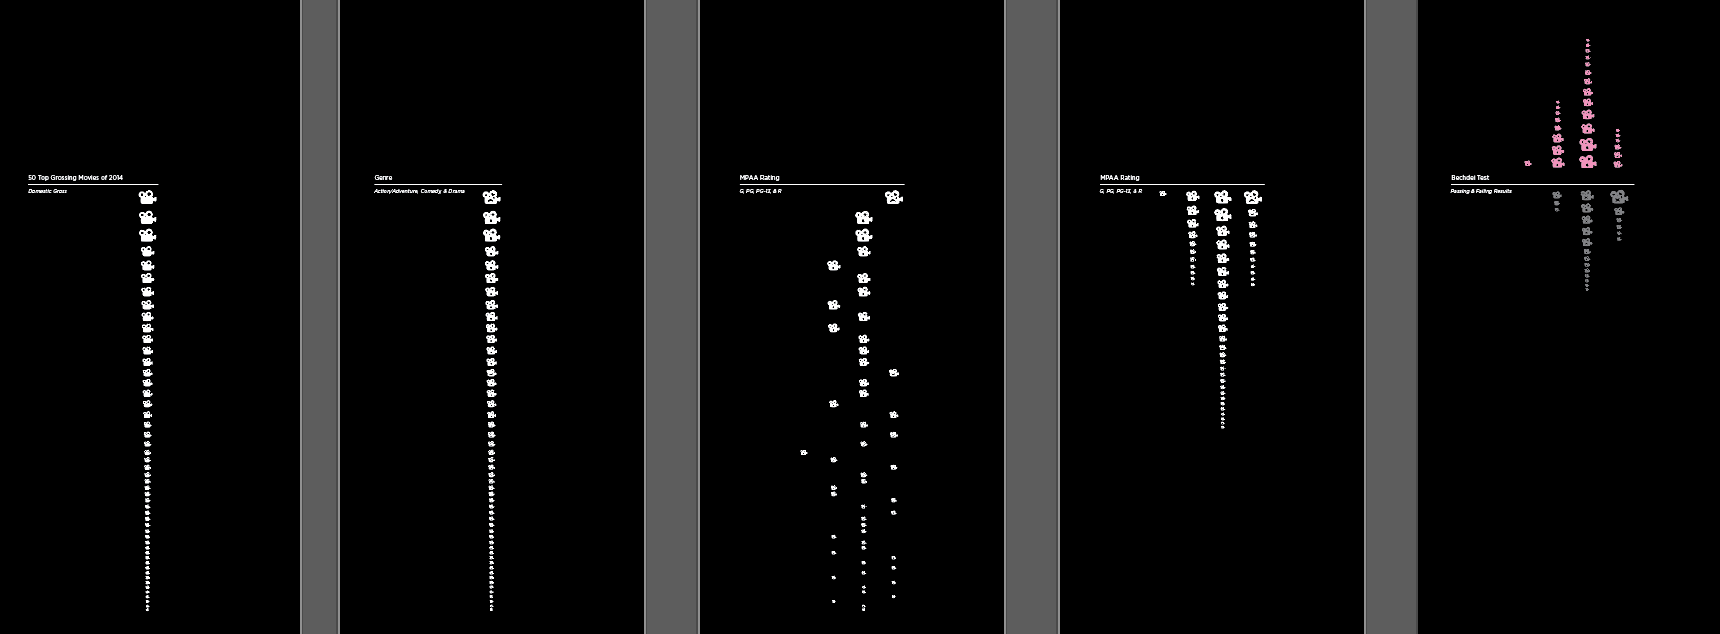 Above is the walkthrough that I liked most. It is very minimalistic and then adds color at the very end for emphasis.